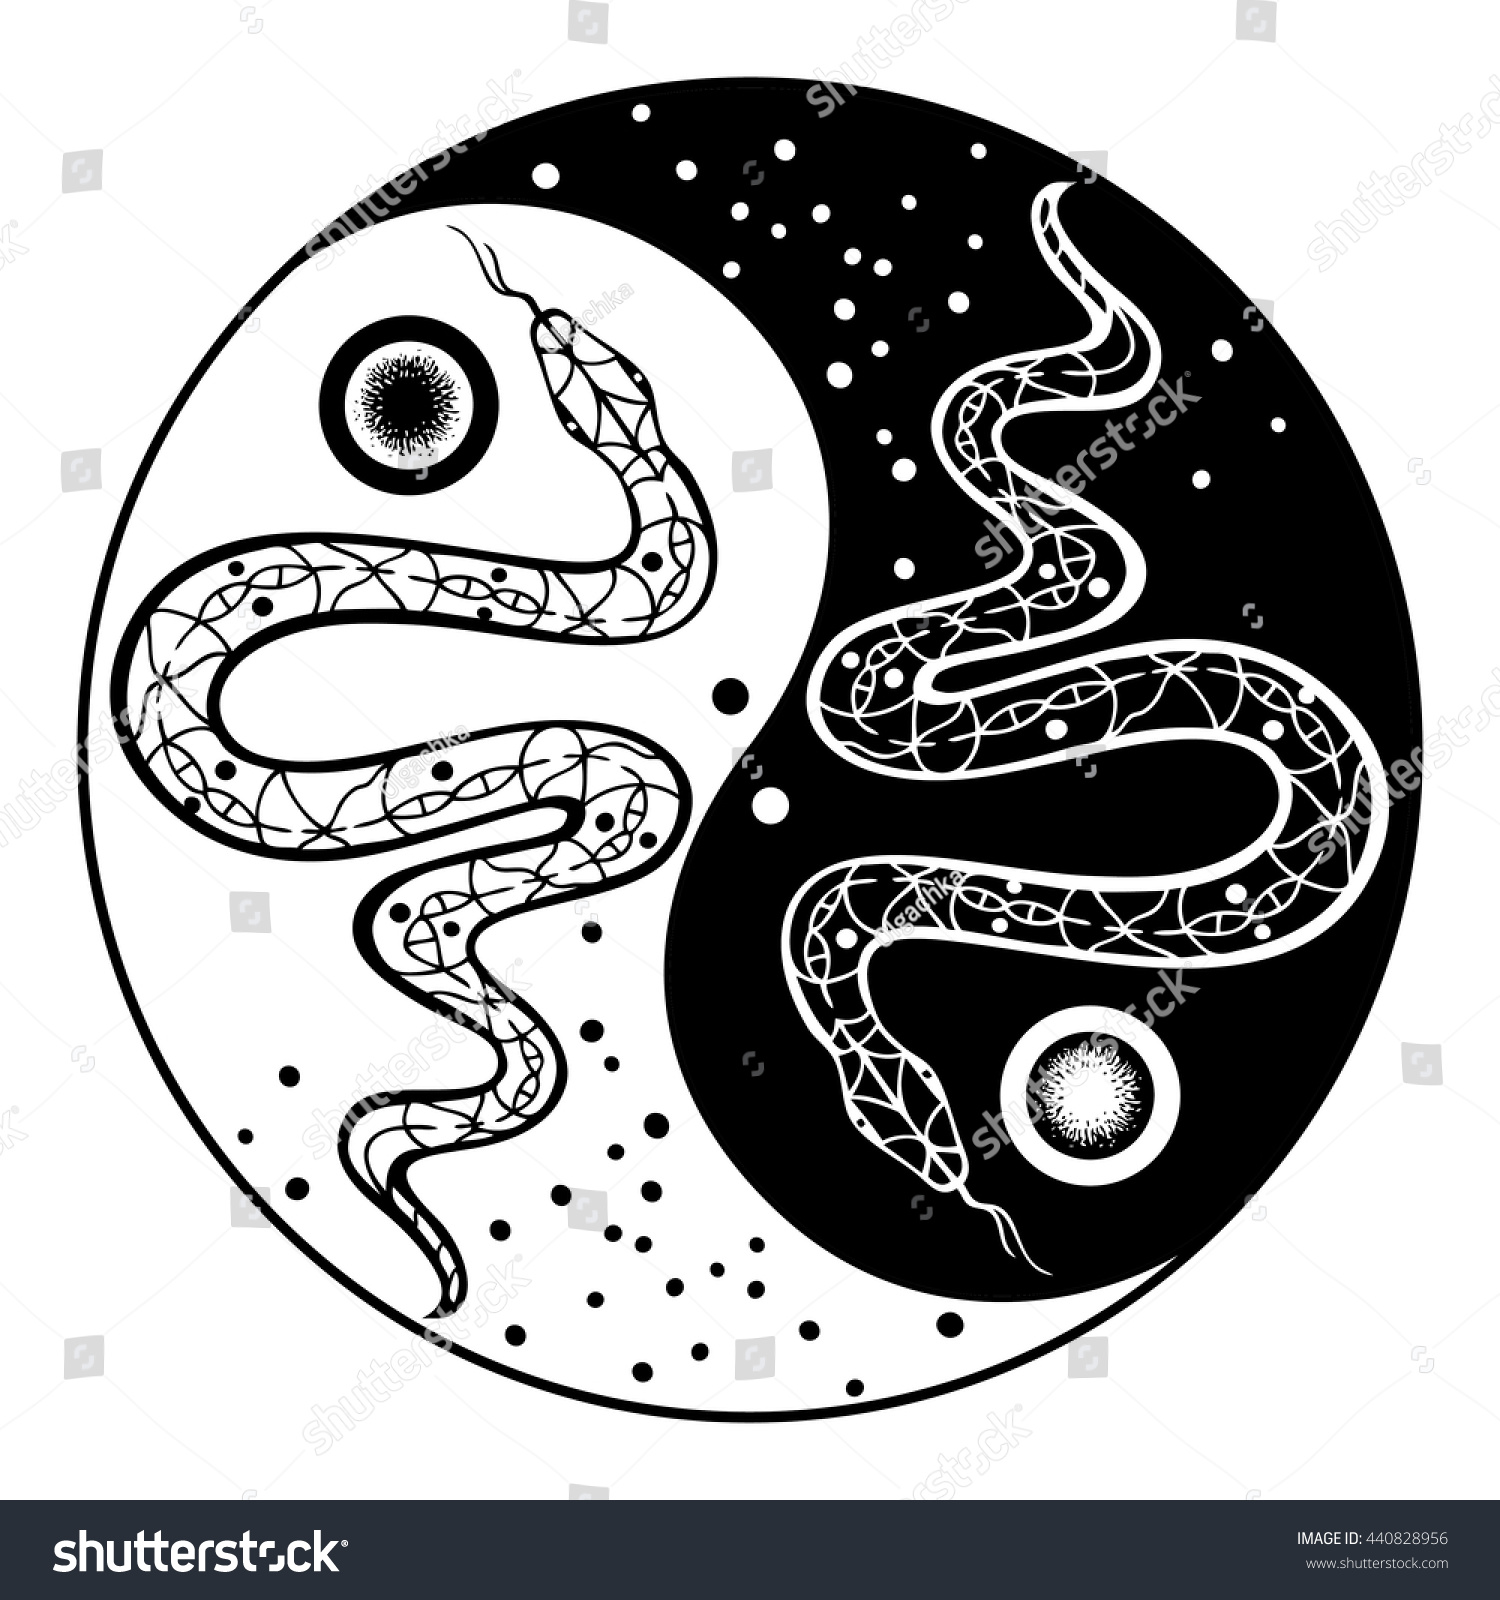 Yin yang decorative symbol snakes hand stock vector for Architecture yin yang